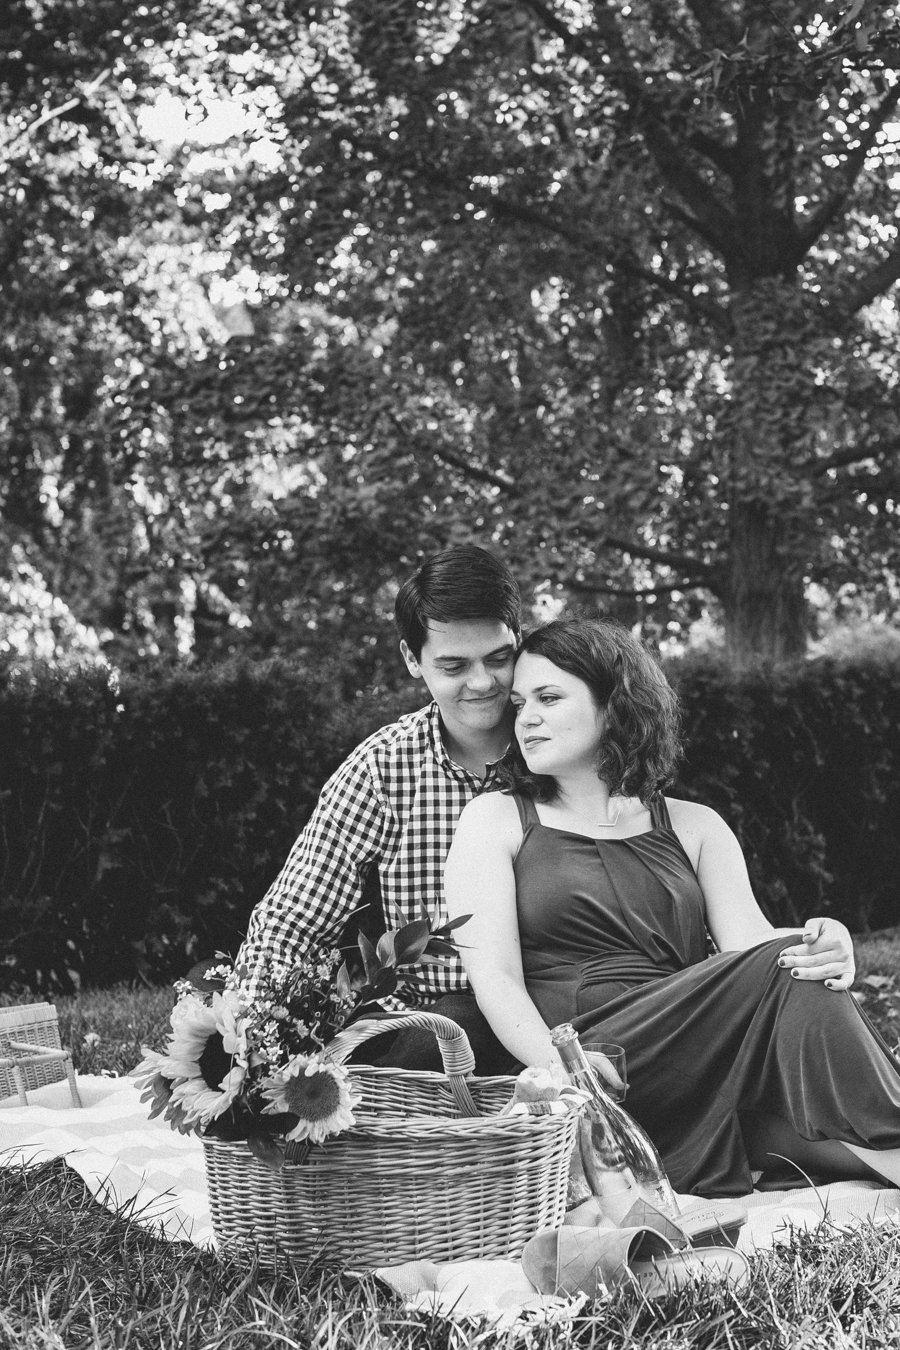 Rachael & Andrew | Engagement Photography | Blog-1-2